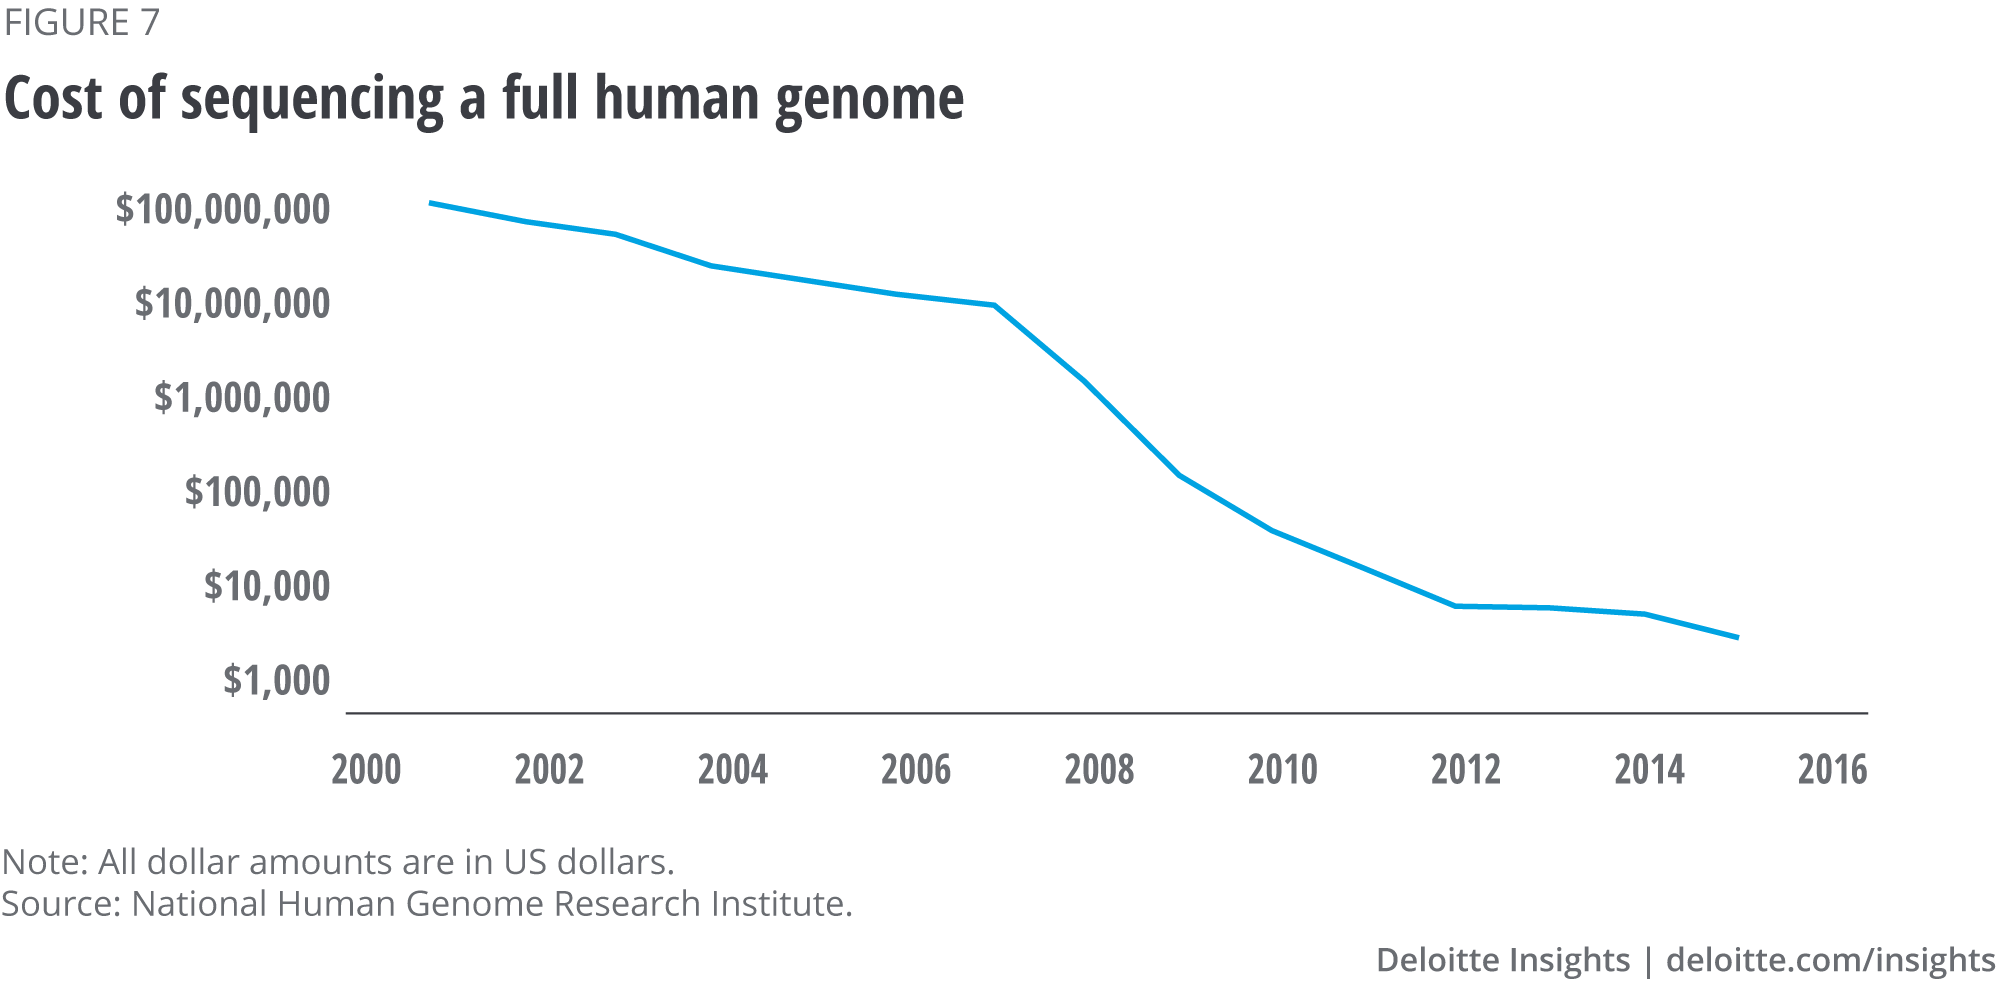 Cost of sequencing a full human genome